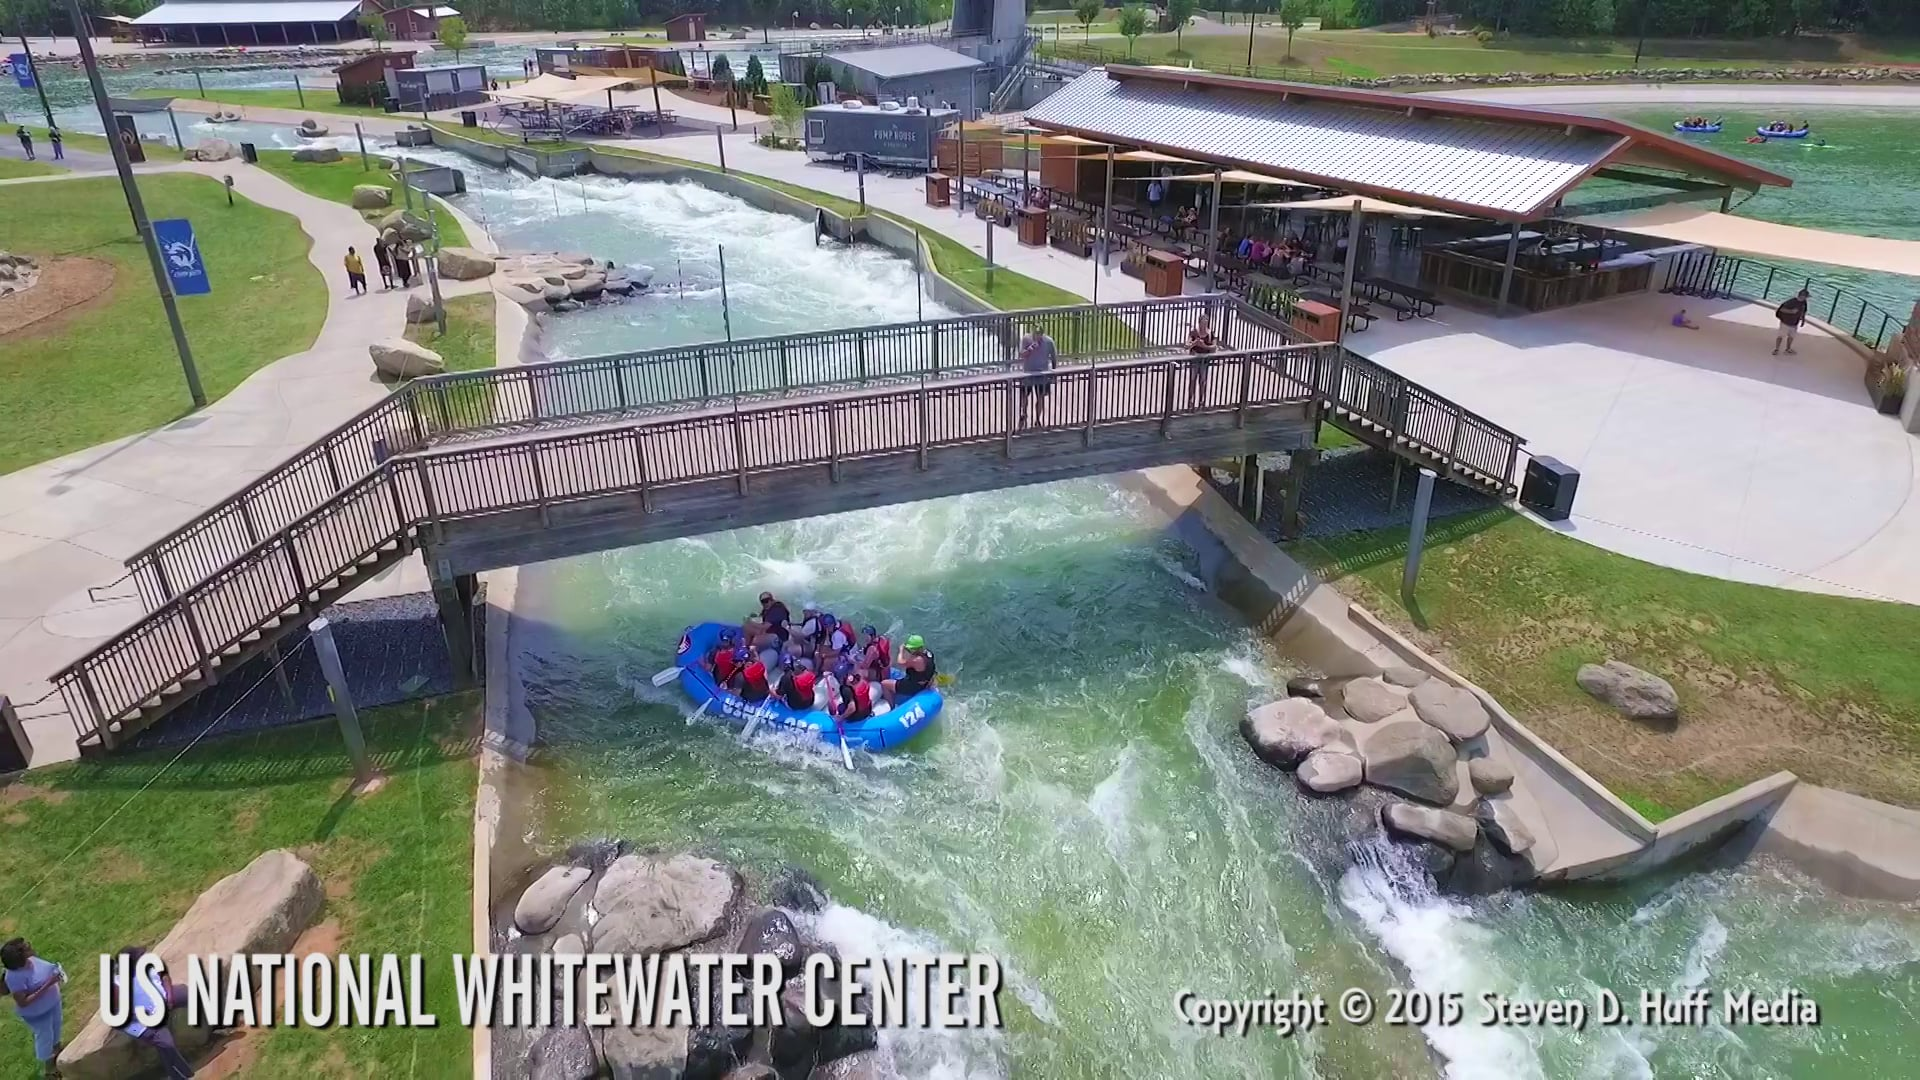 US National Whitewater Center - Aerial Video produced by Steve Huff Media